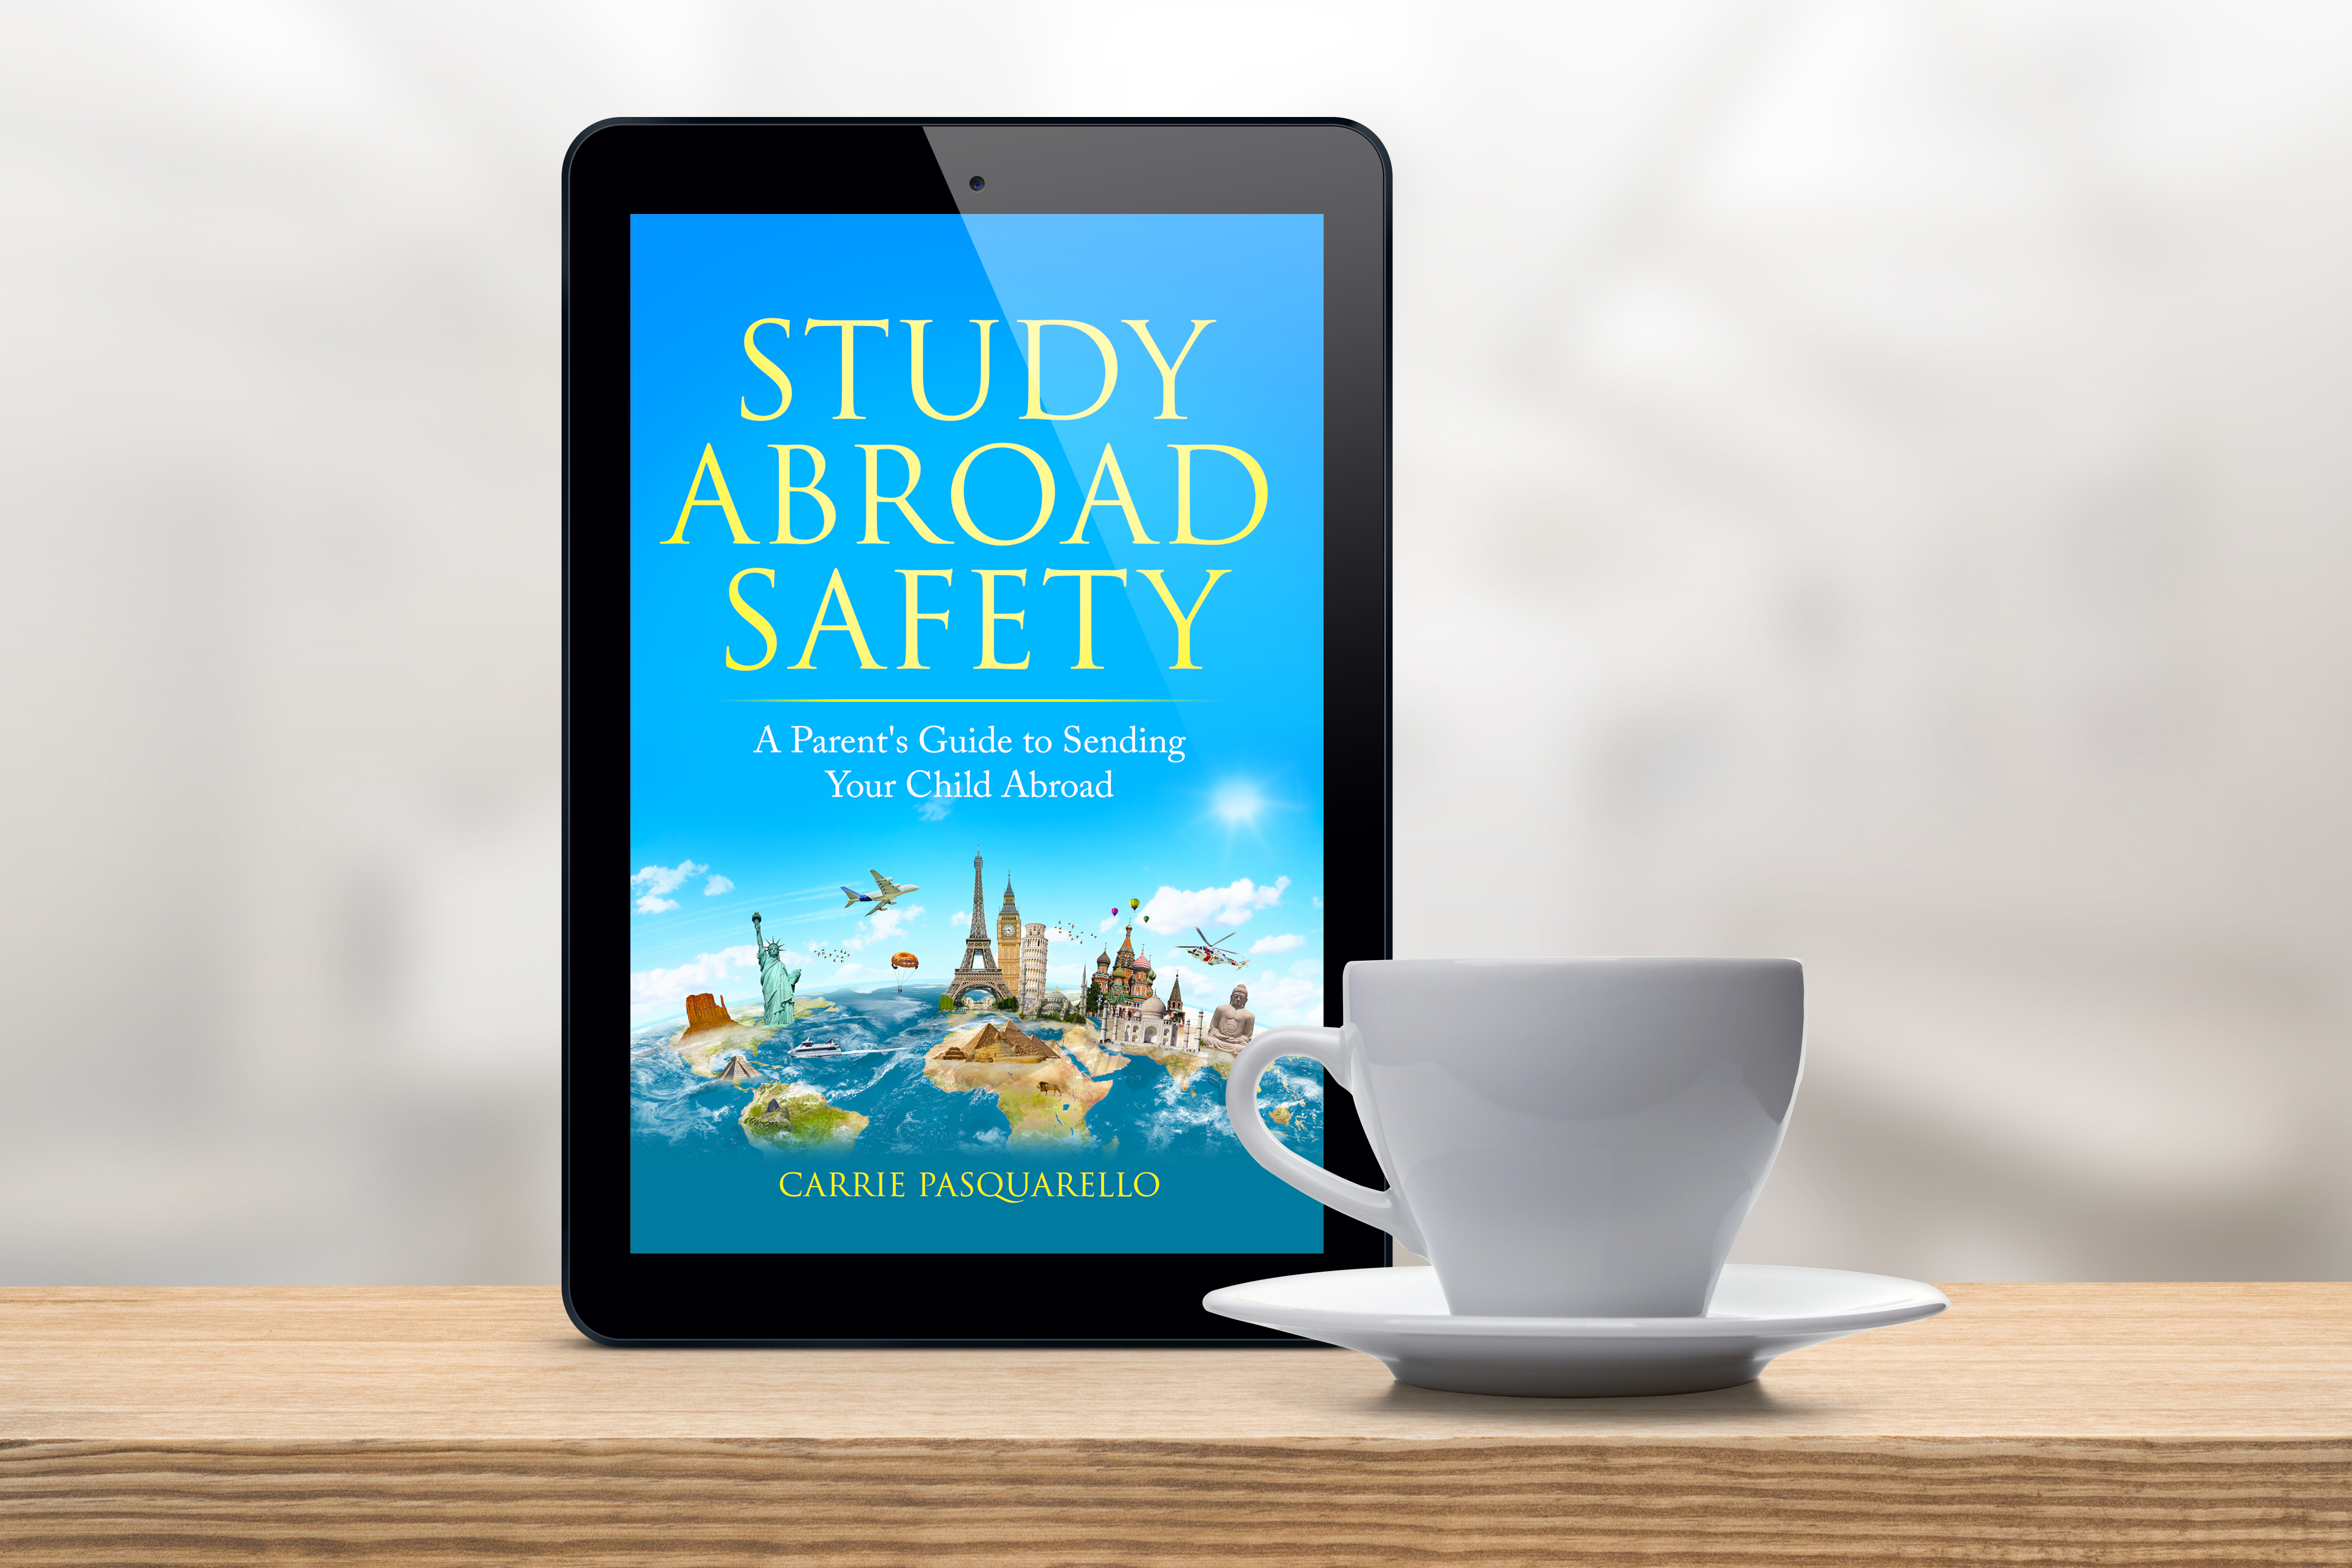 New Book and eBook Launch: Study Abroad Safety, A Parent's Guide to Sending Their Child Abroad